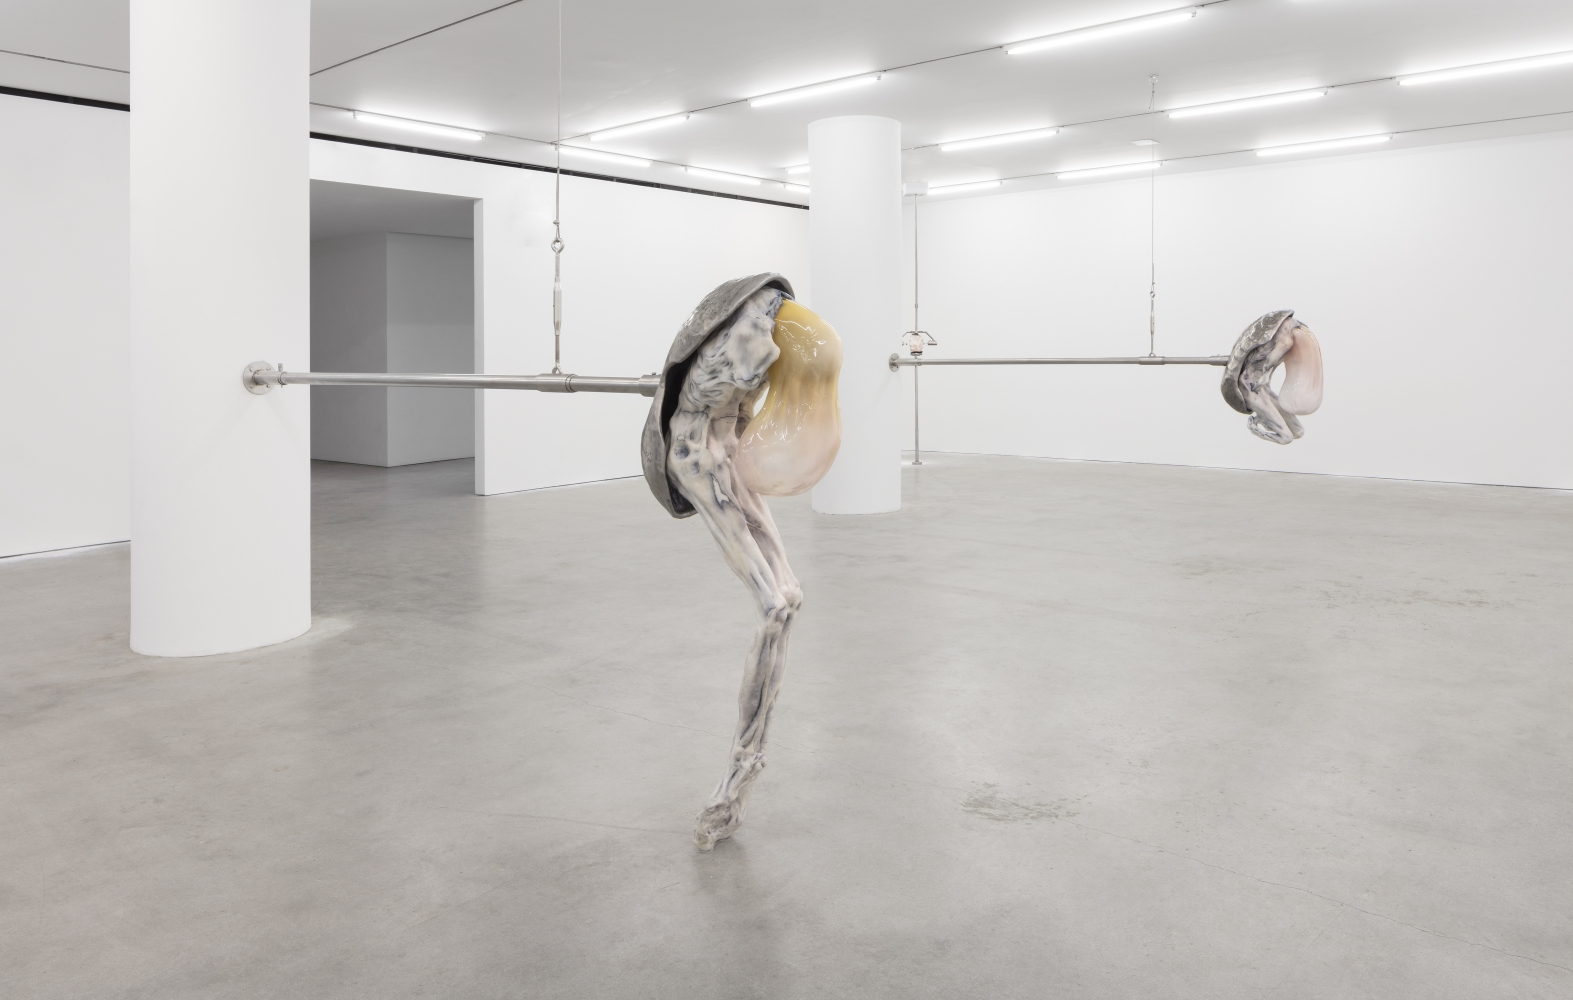 Installation shot of two humanoid figures emerging from oval shell attached by stainless steel rod in an Ivana Bašić exhibition.